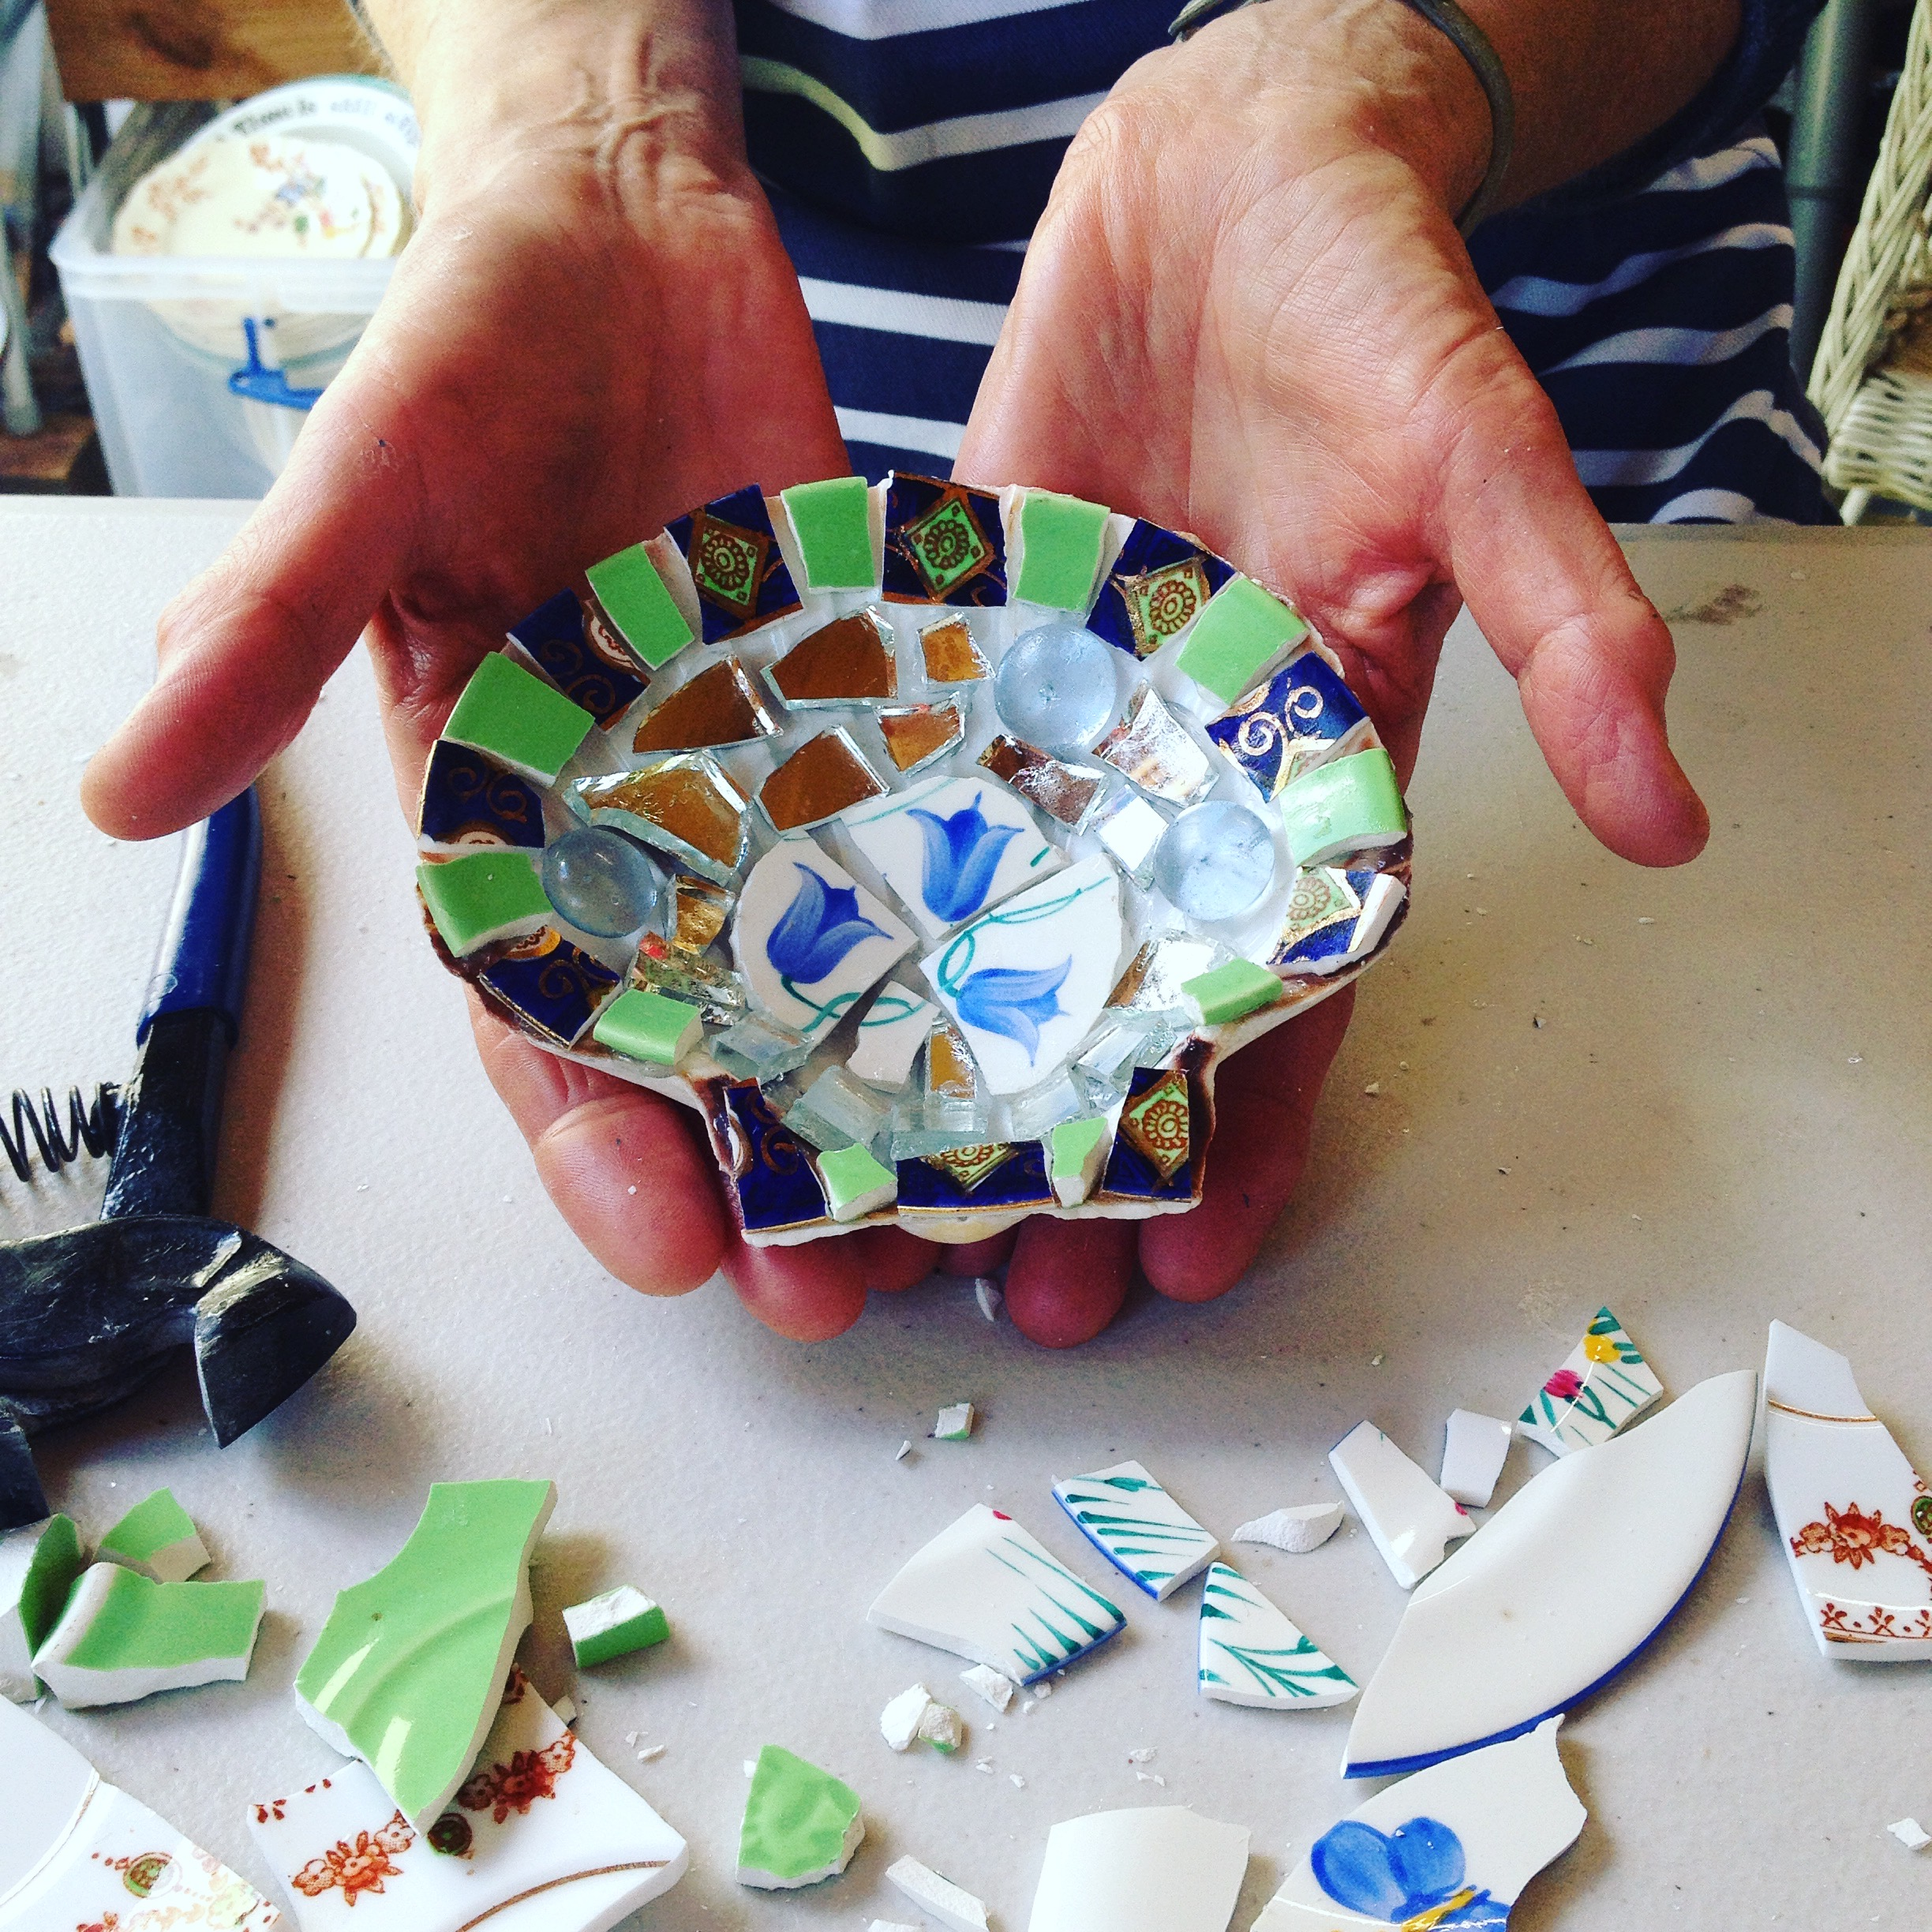 mosaic, workshop,shell,art,craft,sculpture,repurpose,upcycle,recycle